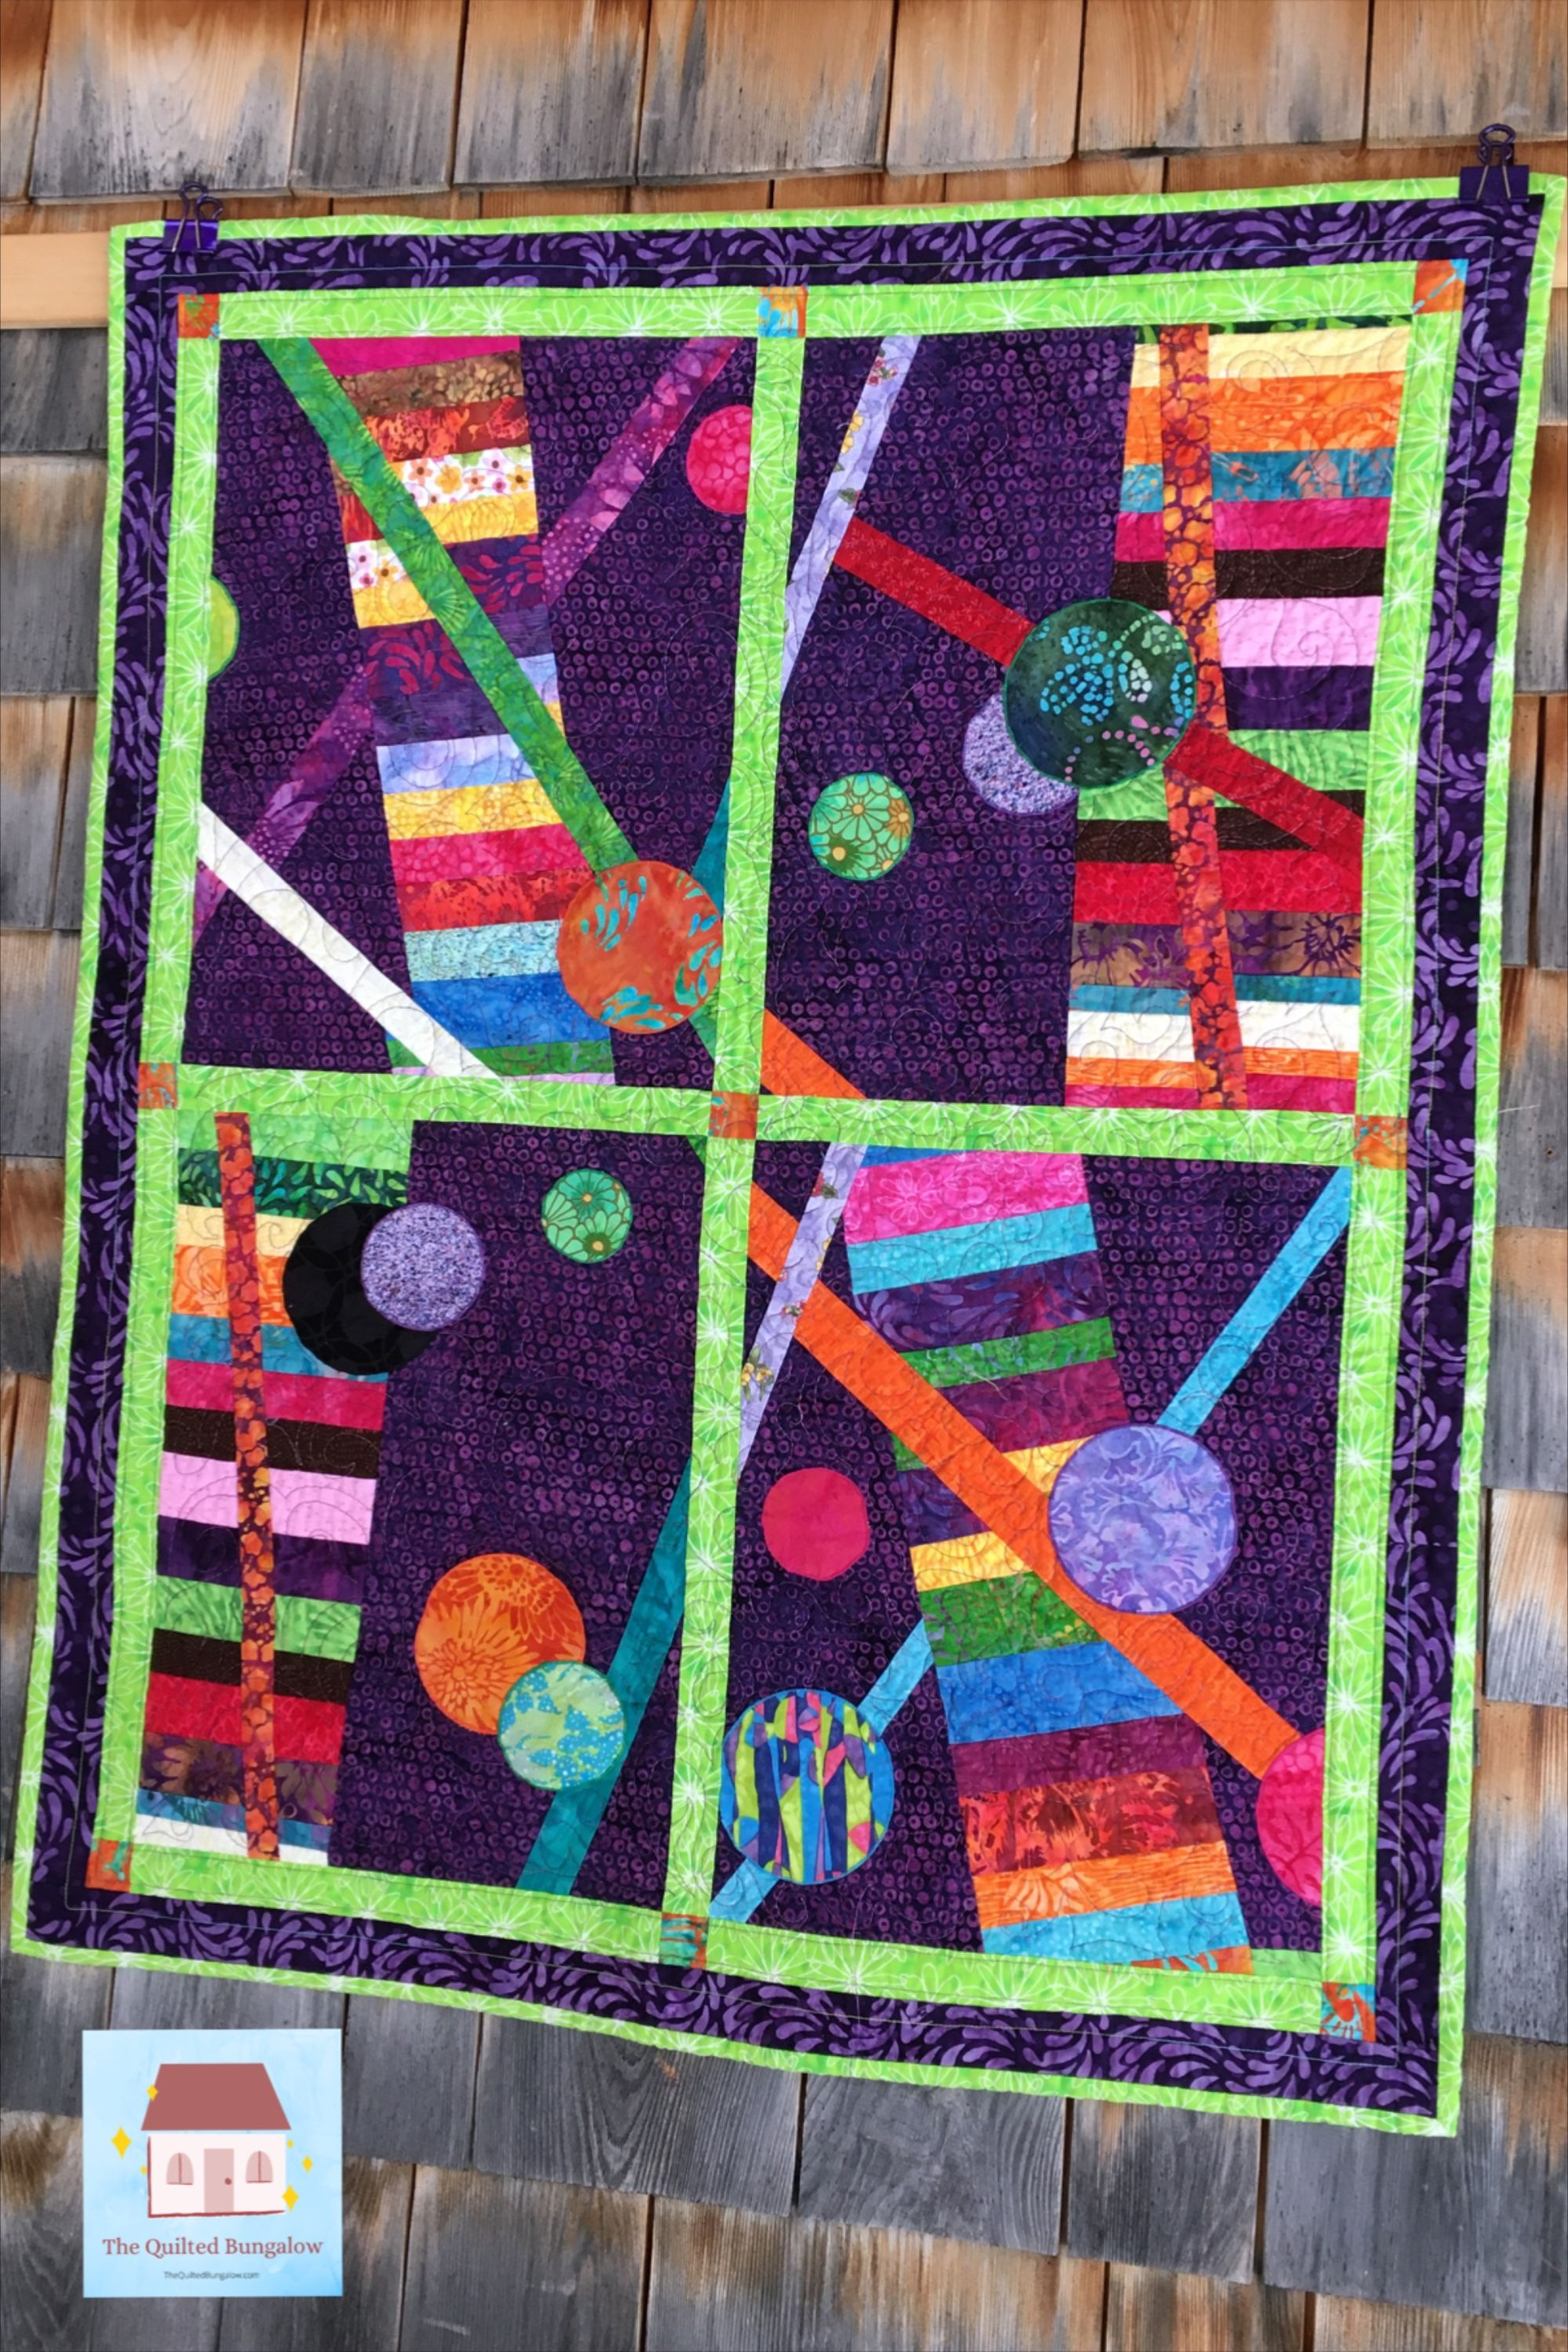 Handmade Quilted Wall Art Wall Hanging Contemporary Wall Etsy In 2020 Fiber Art Quilts Hanging Wall Art Quilted Wall Hangings